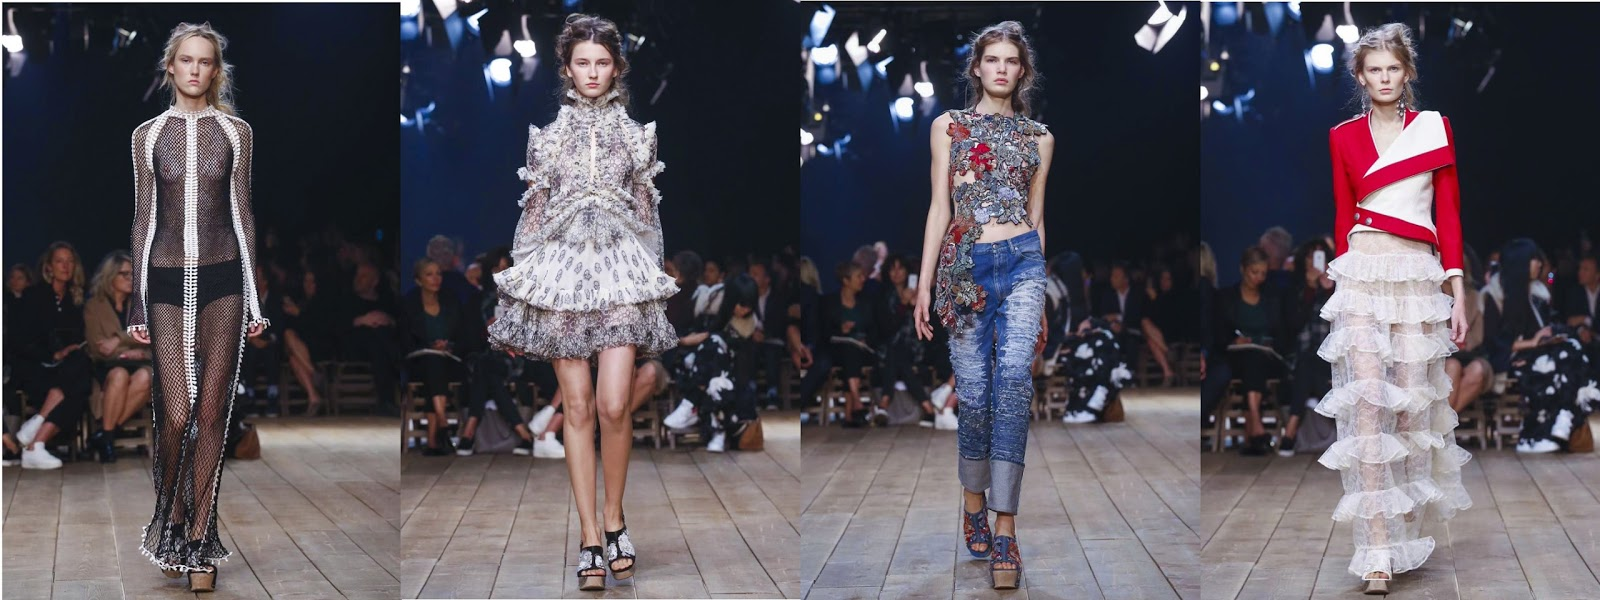 alexander-mcqueen-ss16, alexander-mcqueen-pfw, alexander-mcqueen-printemps-ete, sac-alexander-mcqueen, dudessinauxpodiums, du-dessin-aux-podiums, alexander-mcqueen-london, alexander-mcqueen-will-return-to-london